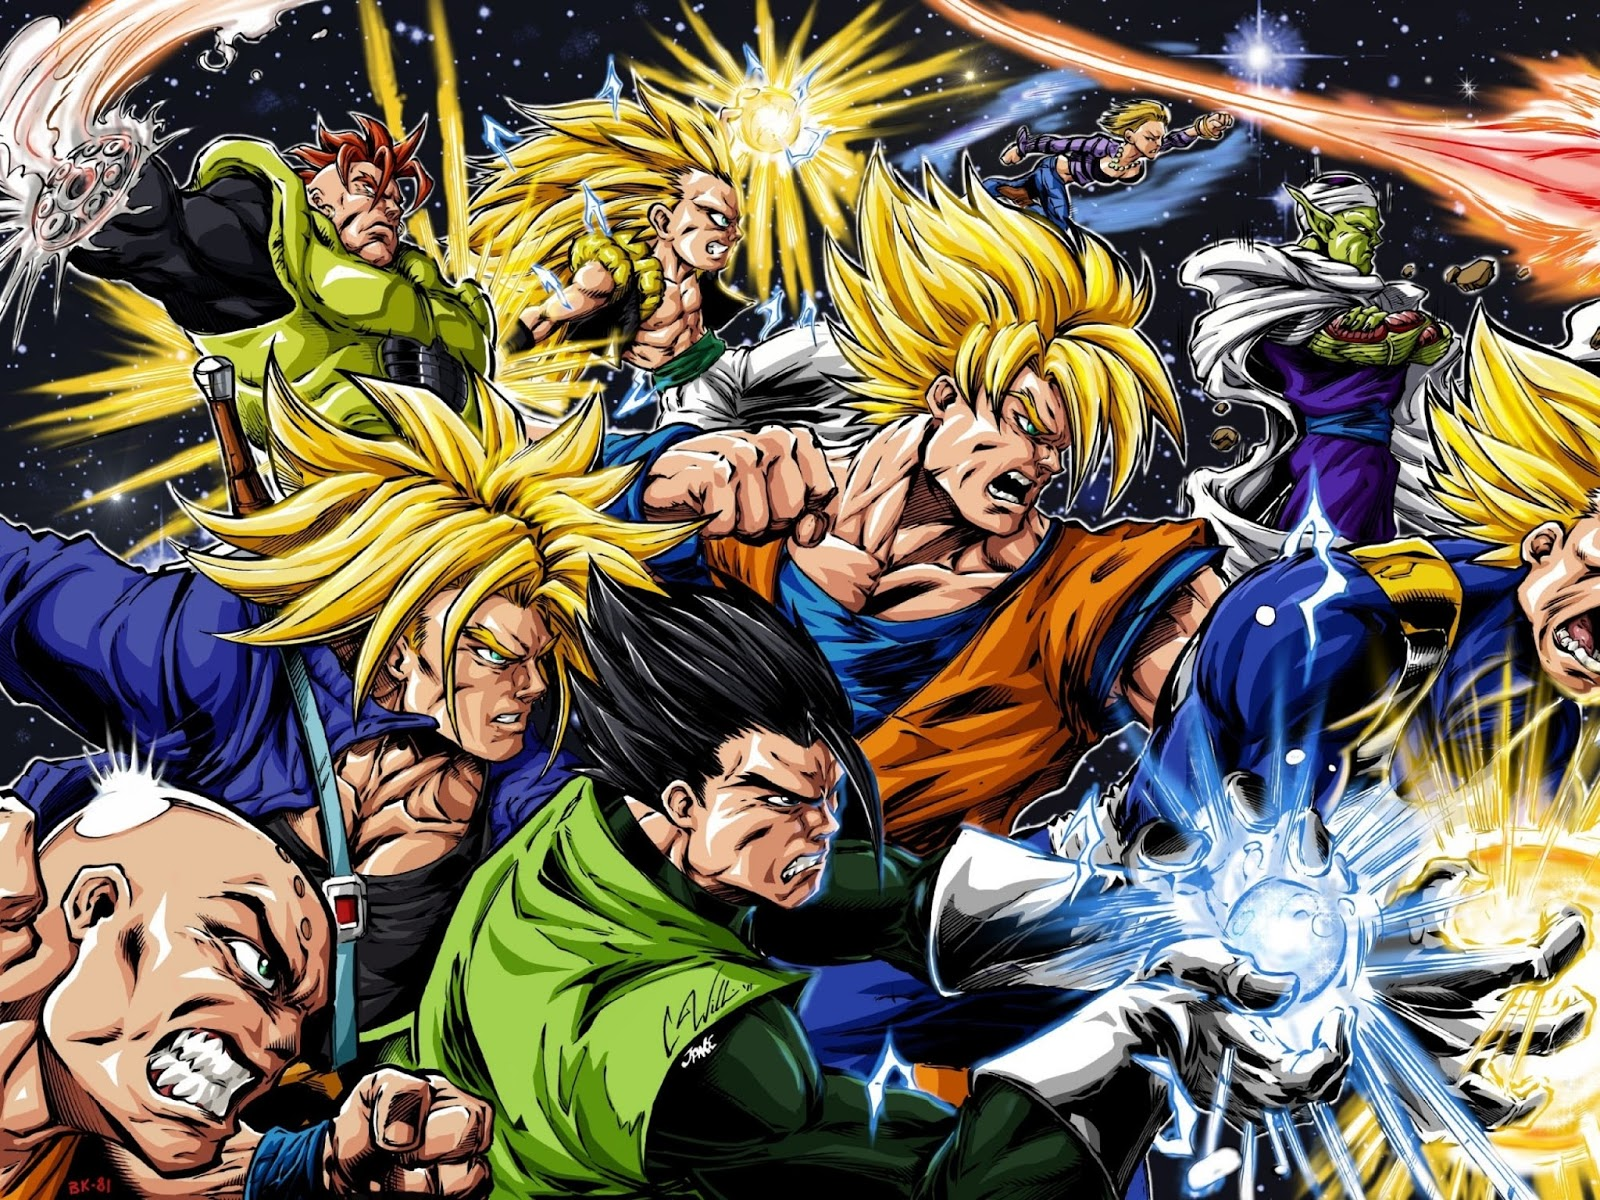 Dragon Ball Z Hd Wallpaper For Android: Ico Blogs: ... Android 16 Anime Dragon Ball Z HD Wallpaper